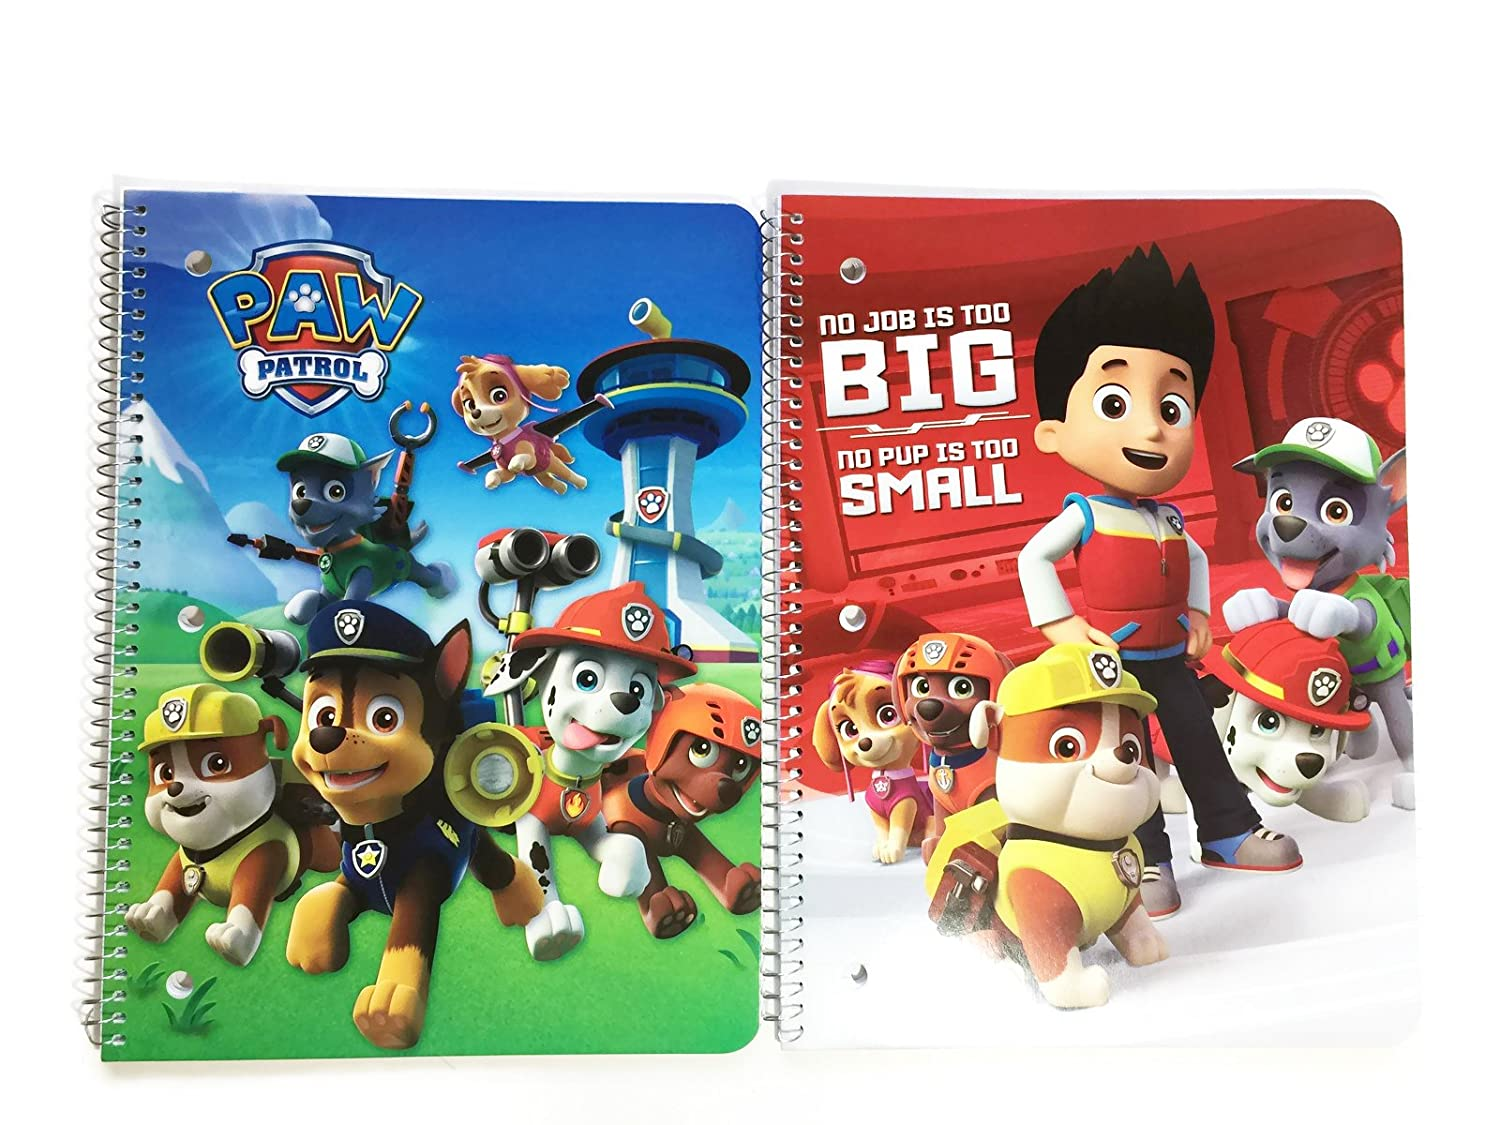 Nickelodeon Paw Patrol Ready for School Notebooks Bundle  2 Items of Spiral Notebook For Kids by Nickelodeon